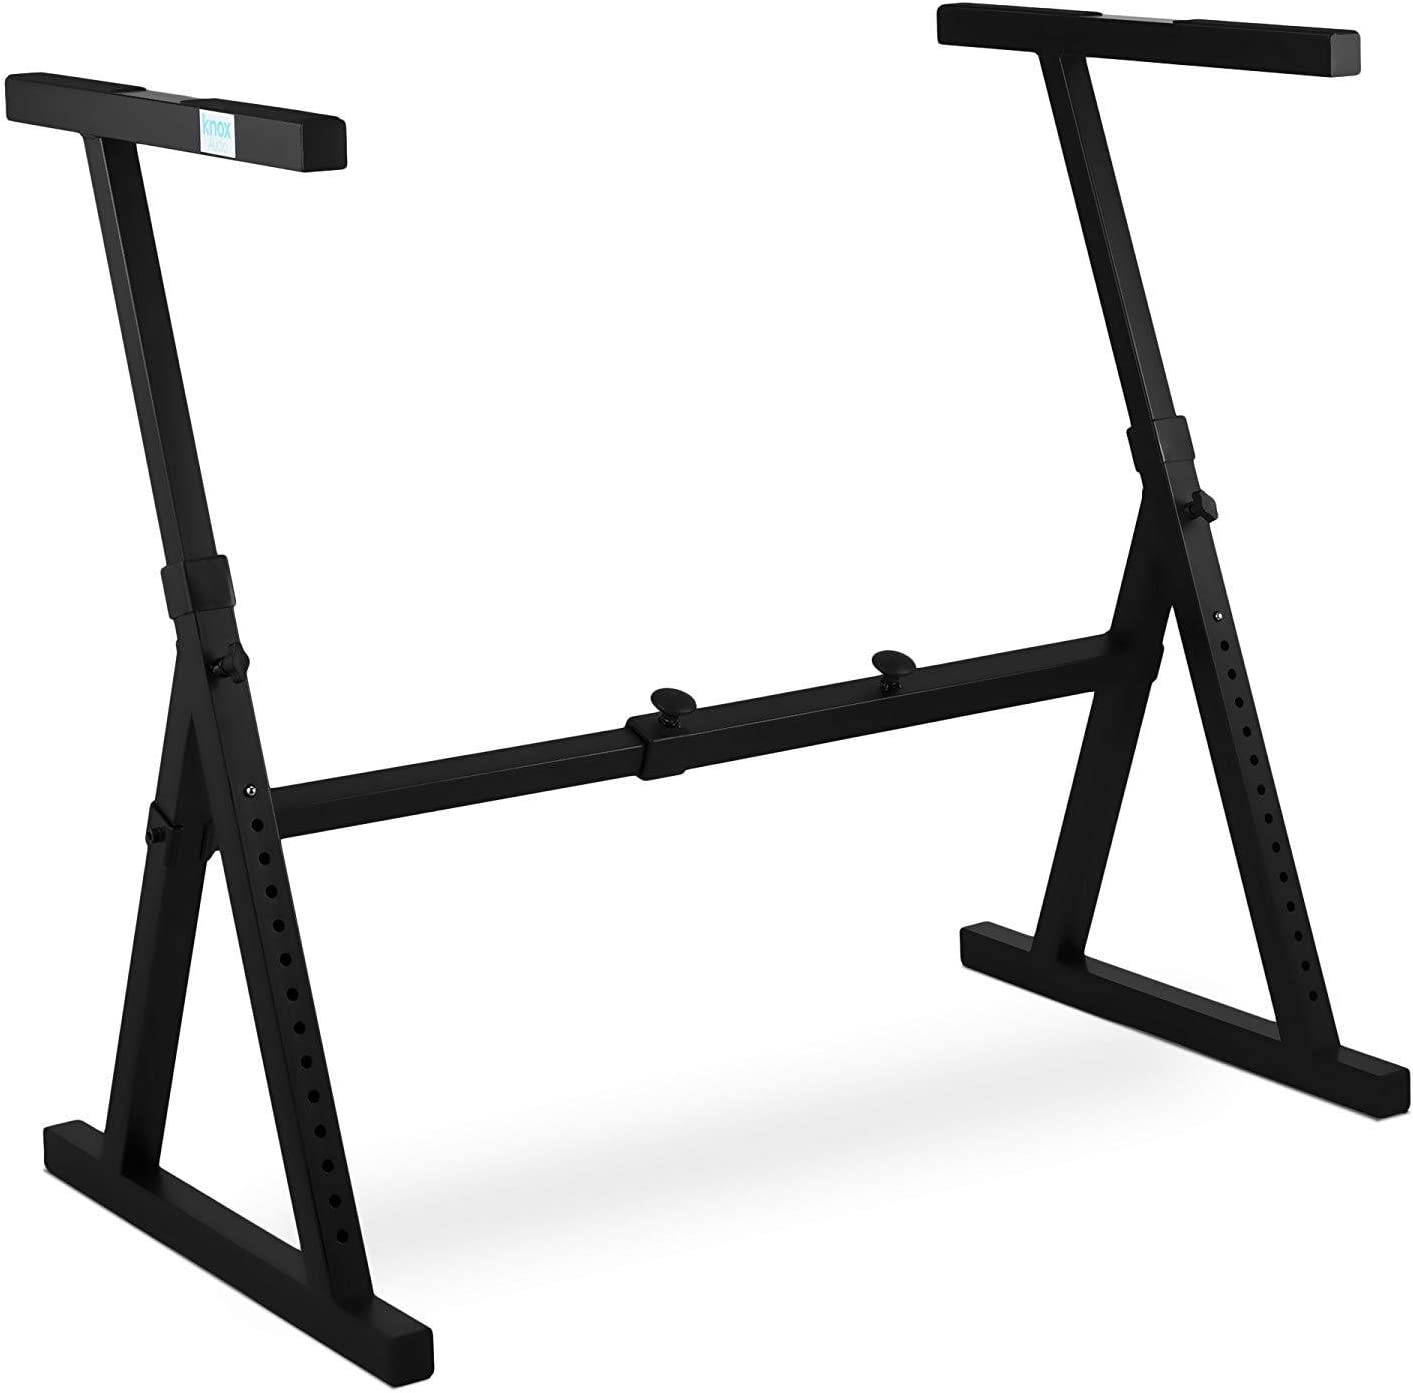 GeeWin Single-X Keyboard Stand Adjustable Electronic Piano Stand 7 Lockable Heights With Locking Straps